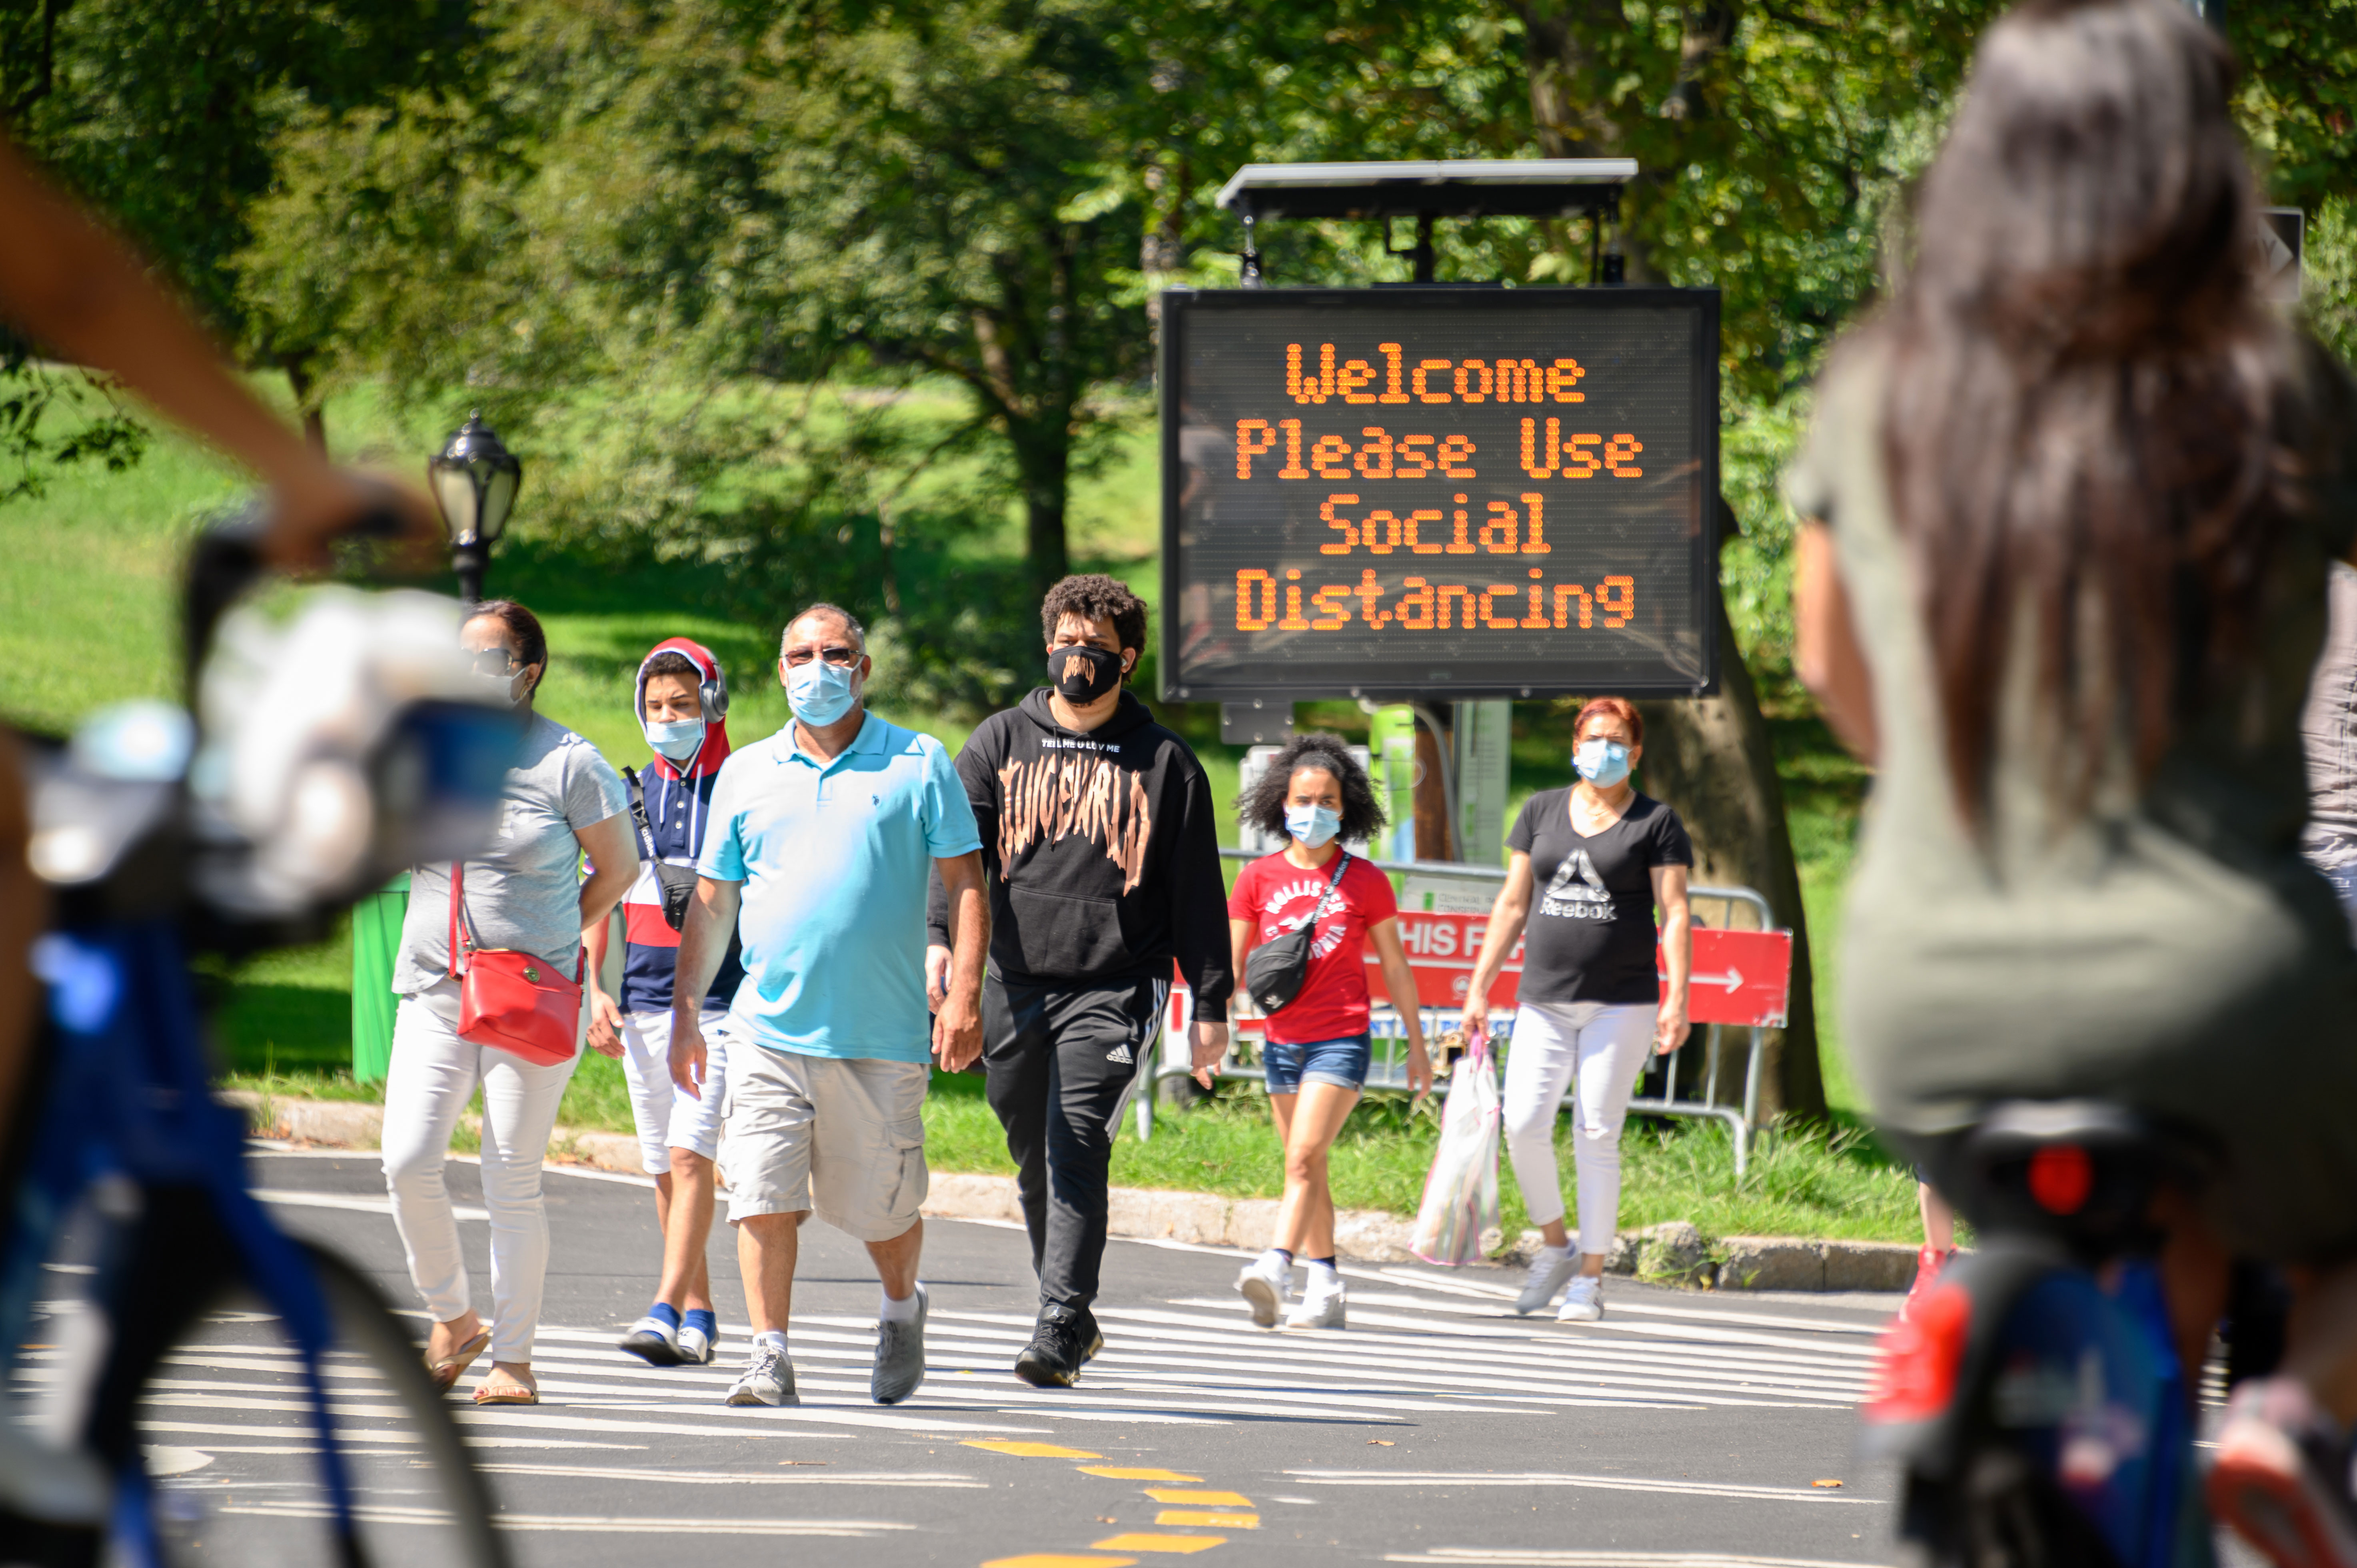 NEW YORK, NEW YORK - SEPTEMBER 06: People wear protective face masks near a social distancing sign in Central Park as the city continues Phase 4 of re-opening following restrictions imposed to slow the spread of coronavirus on September 6, 2020 in New York City. The fourth phase allows outdoor arts and entertainment, sporting events without fans and media production. (Photo by Noam Galai/Getty Images)